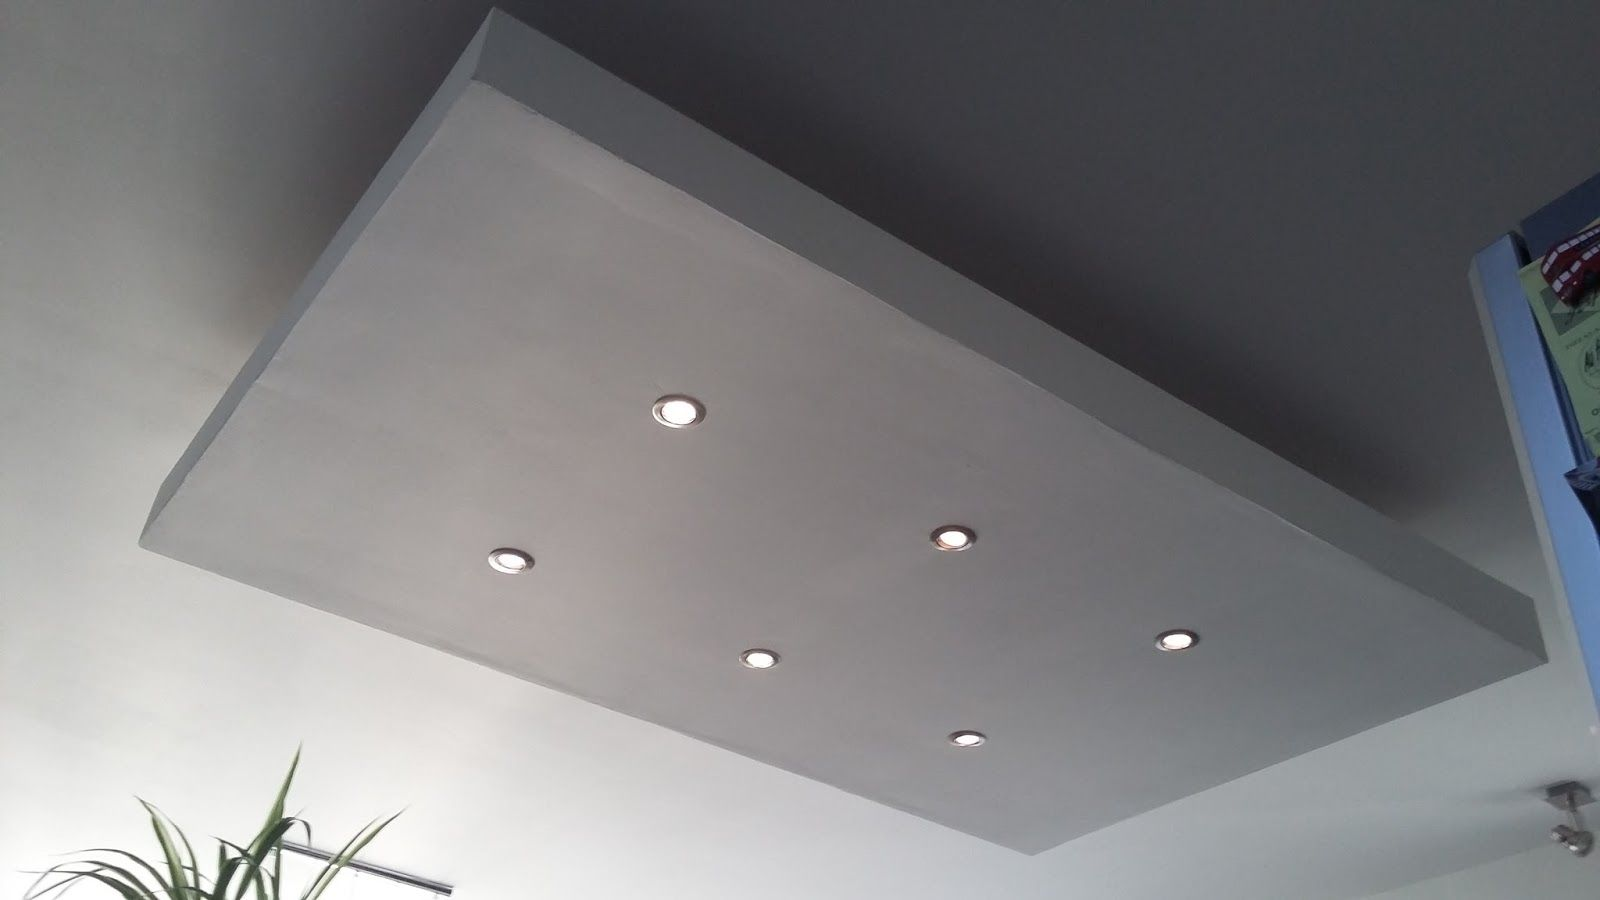 D roch plafond descendu suspendu ilot central for Faux plafond avec spot